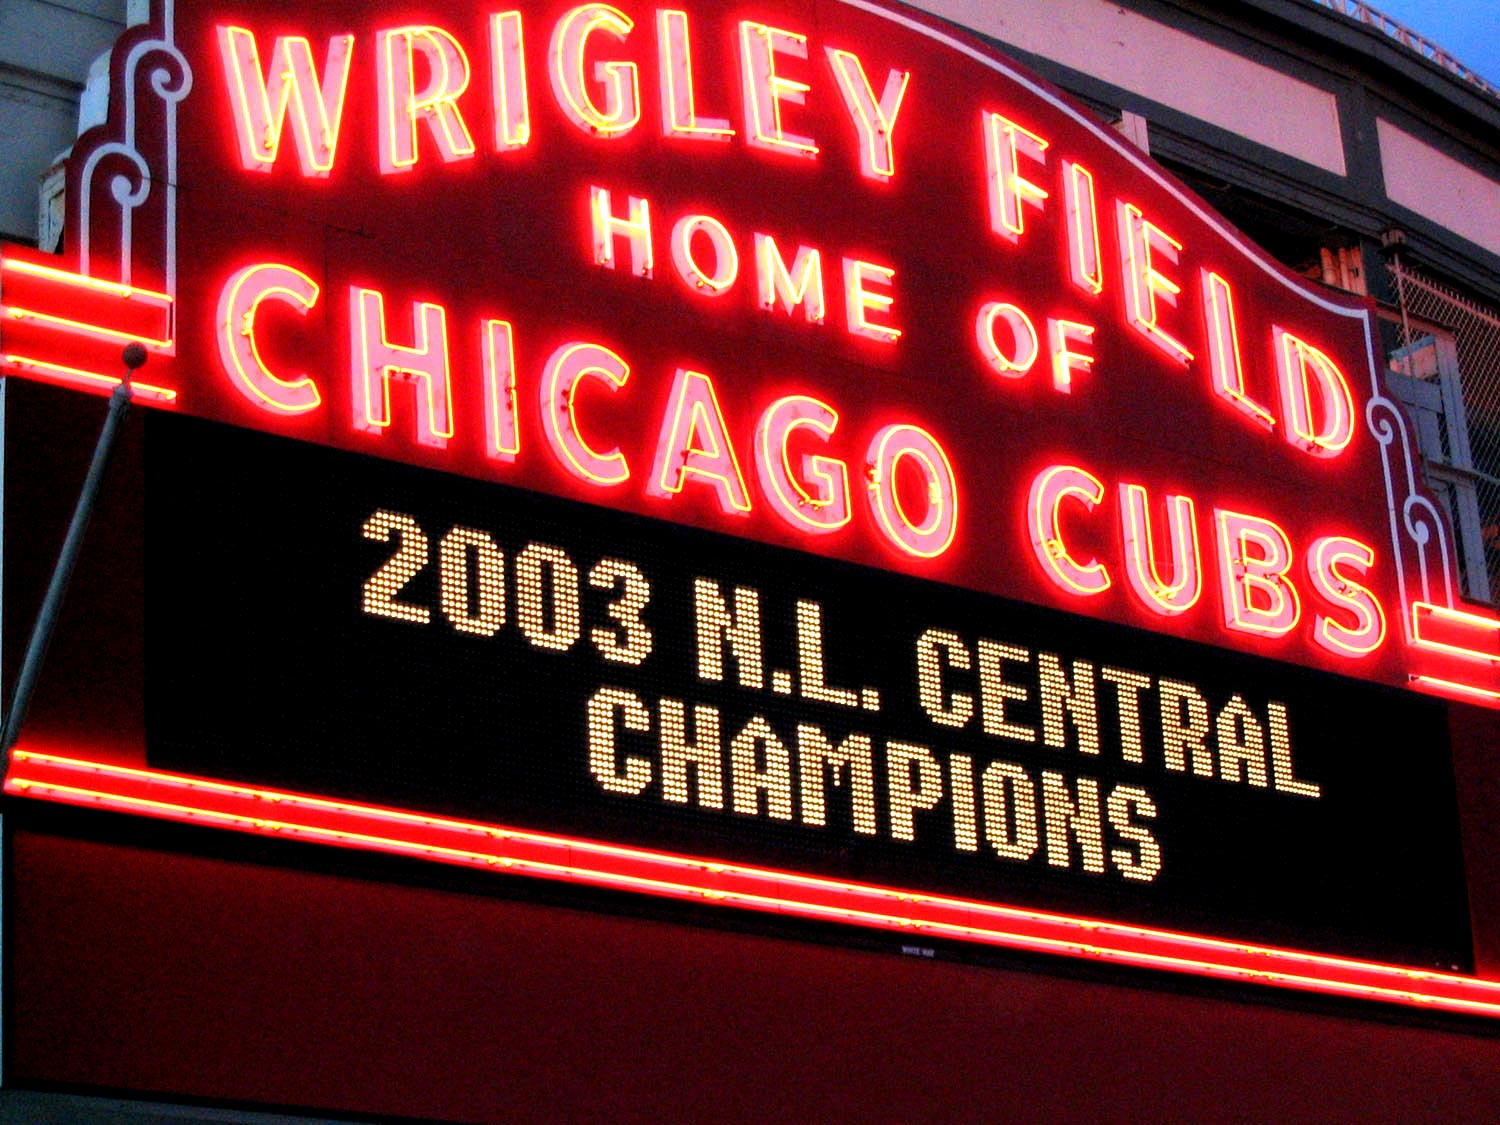 Chicago Cubs desktop wallpapers Chicago Cubs wallpapers 1500x1125